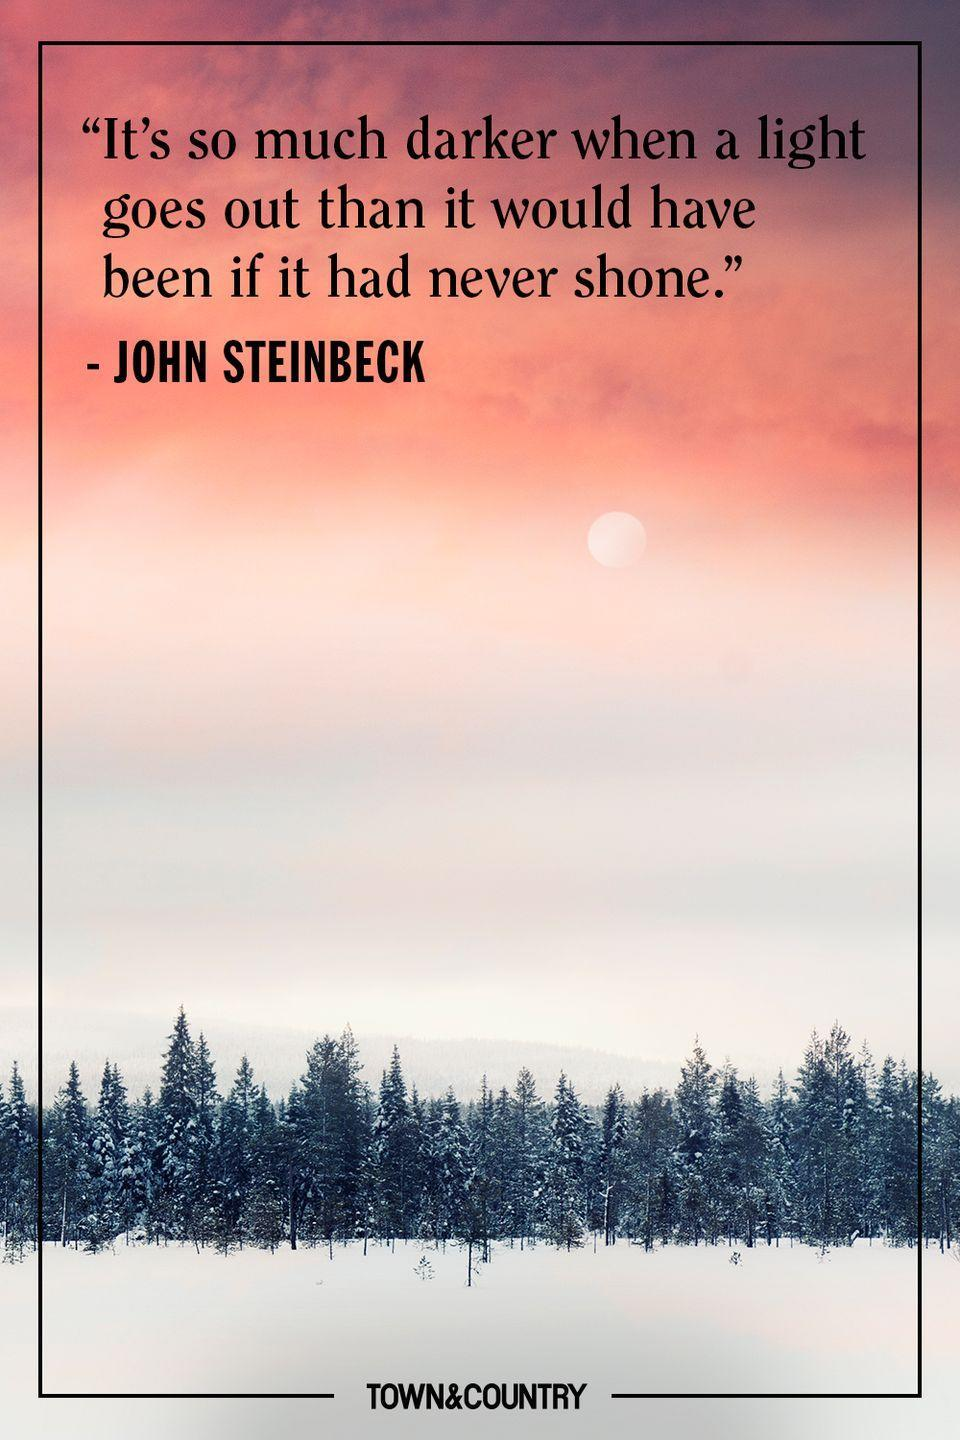 """<p>""""It's so much darker when a light goes out than it would have been if it had never shone.""""</p><p>– John Steinbeck</p>"""